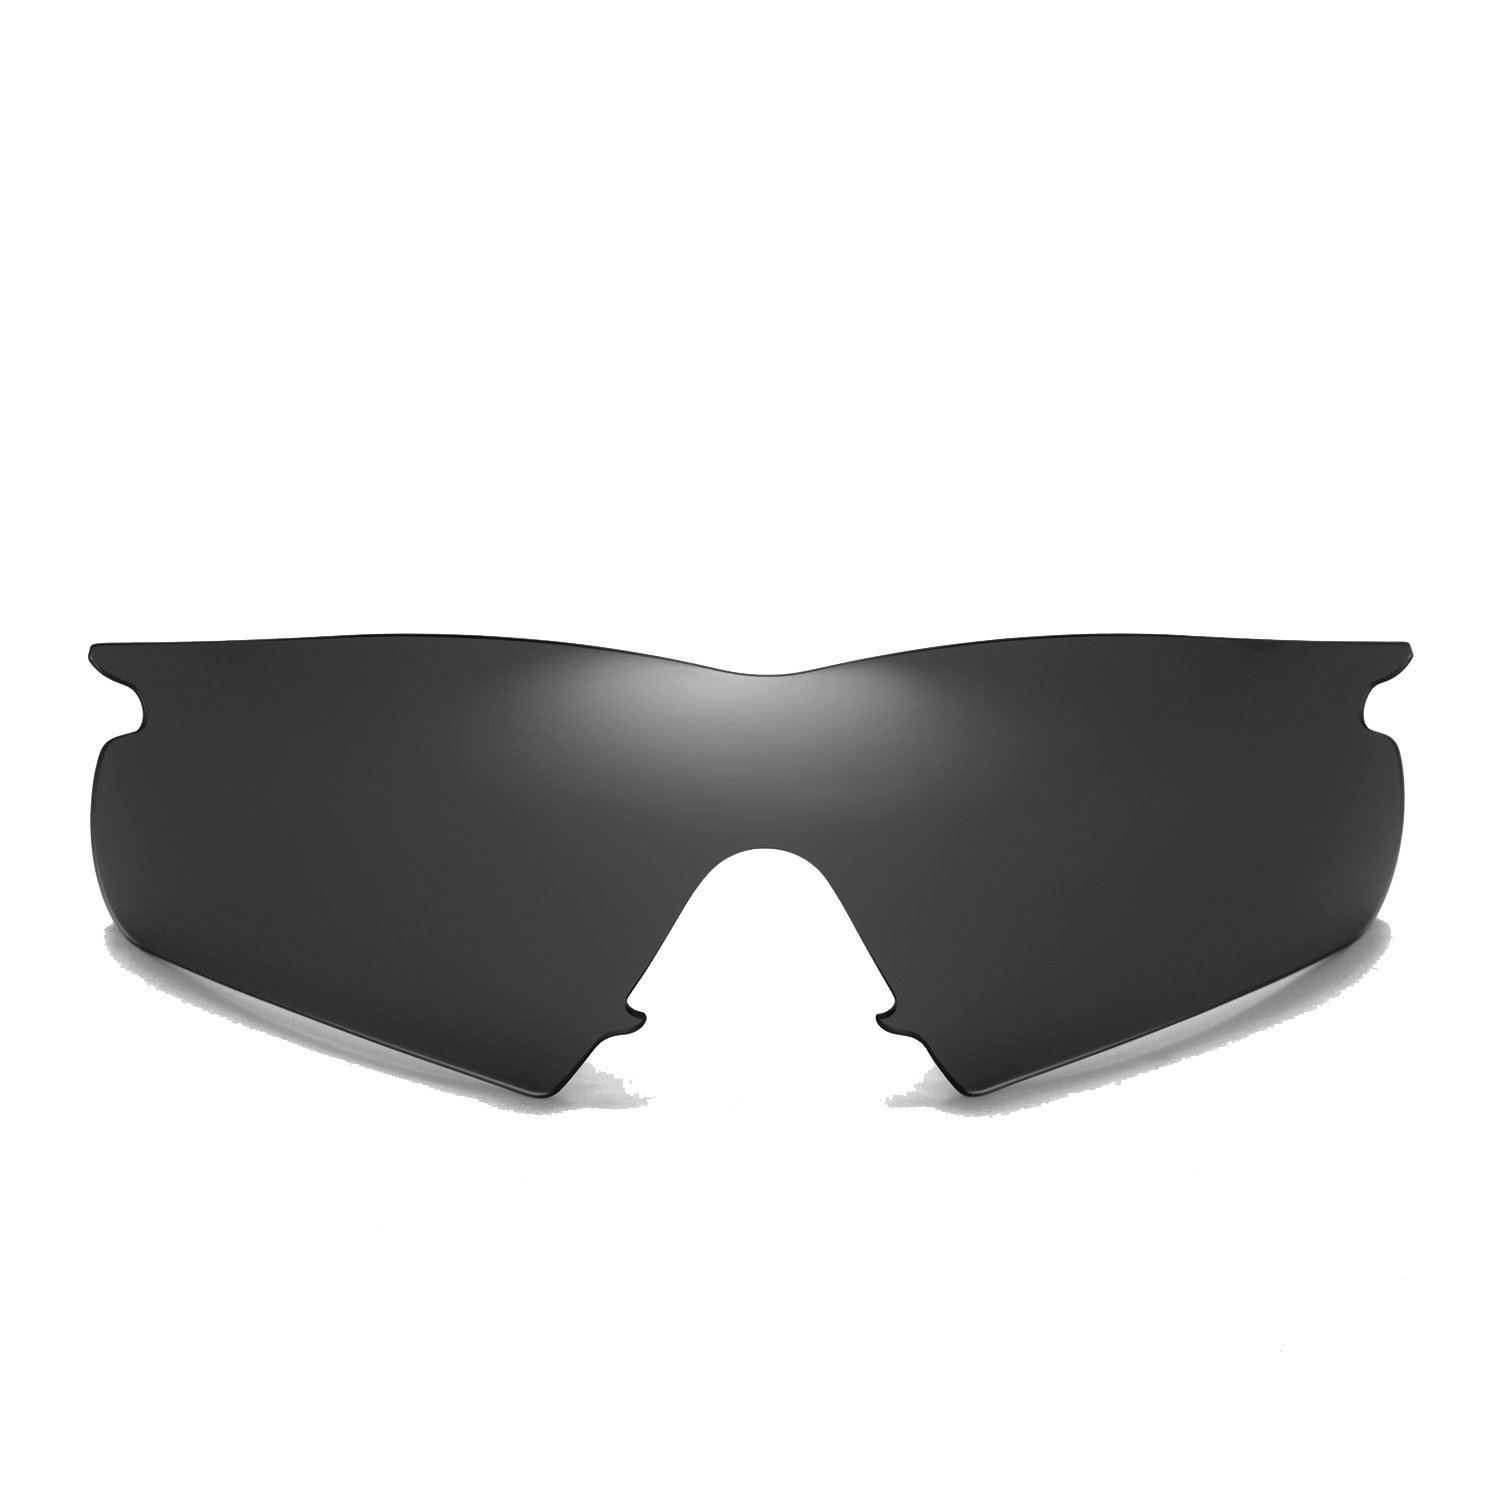 47508a0f8c Amazon.com  Cofery Replacement Lenses for Oakley M Frame Hybrid Sunglasses  - Multiple Options Available (Black - Non-Polarized)  Clothing